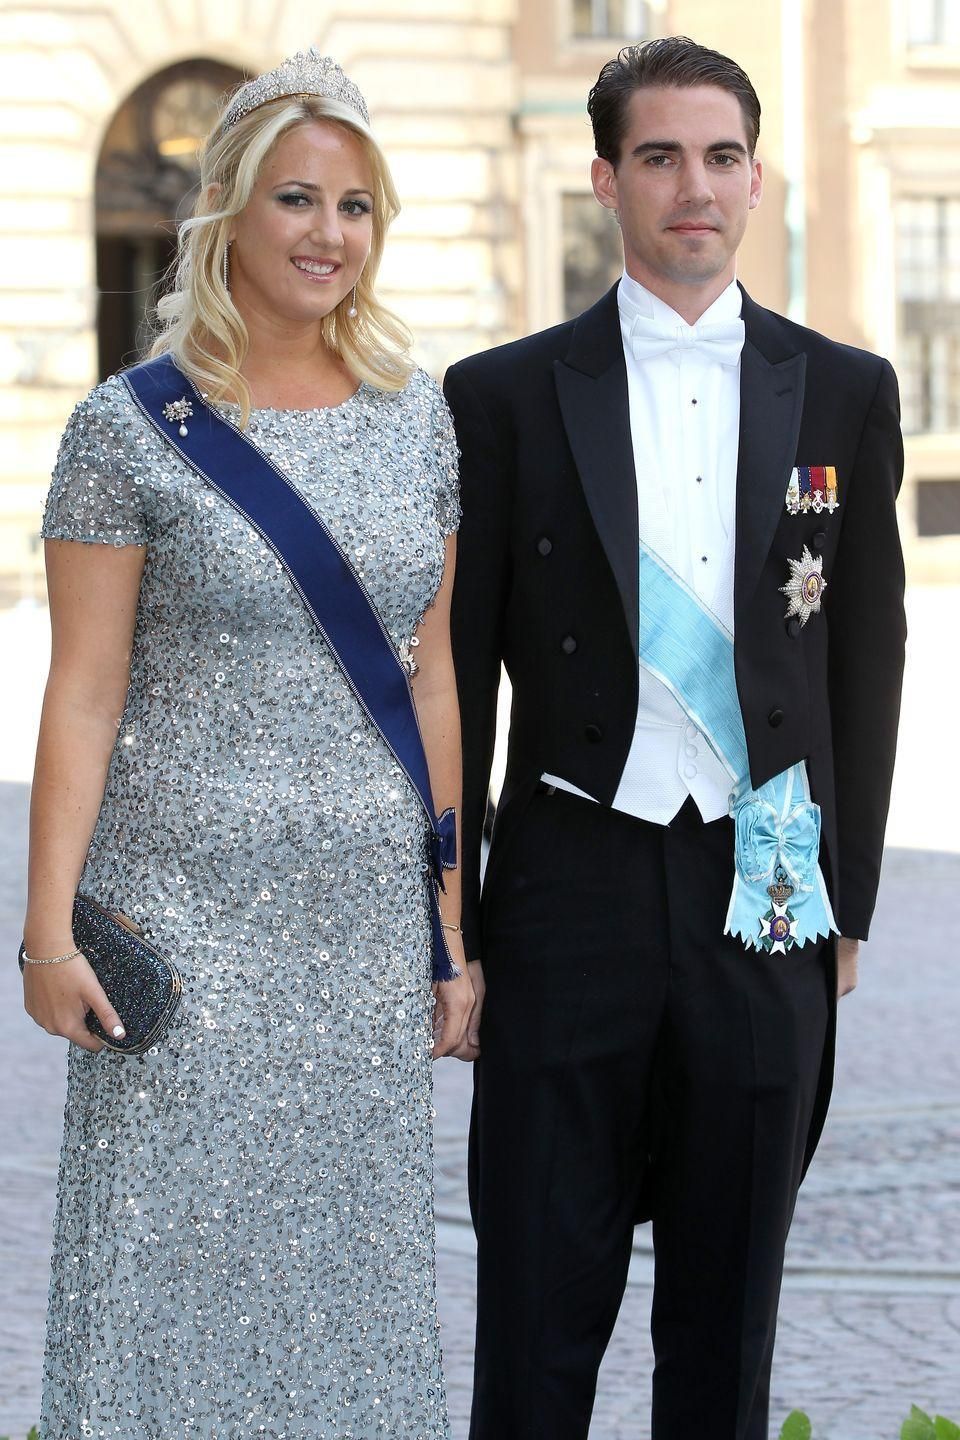 <p>Born in 1986, Philippos is the youngest son of Greece's last monarch, Constantine II, whose reign ended in 1973. Yes, this means Philippos' title is just a title, but he's still on the market if you want to get to know a prince, ask him about hedge funds (he works as an analyst in Manhattan), or want to talk about the weather in D.C. (he studied at Georgetown). Here he is with sister Theodora at the wedding of Princess Madeleine of Sweden.</p>